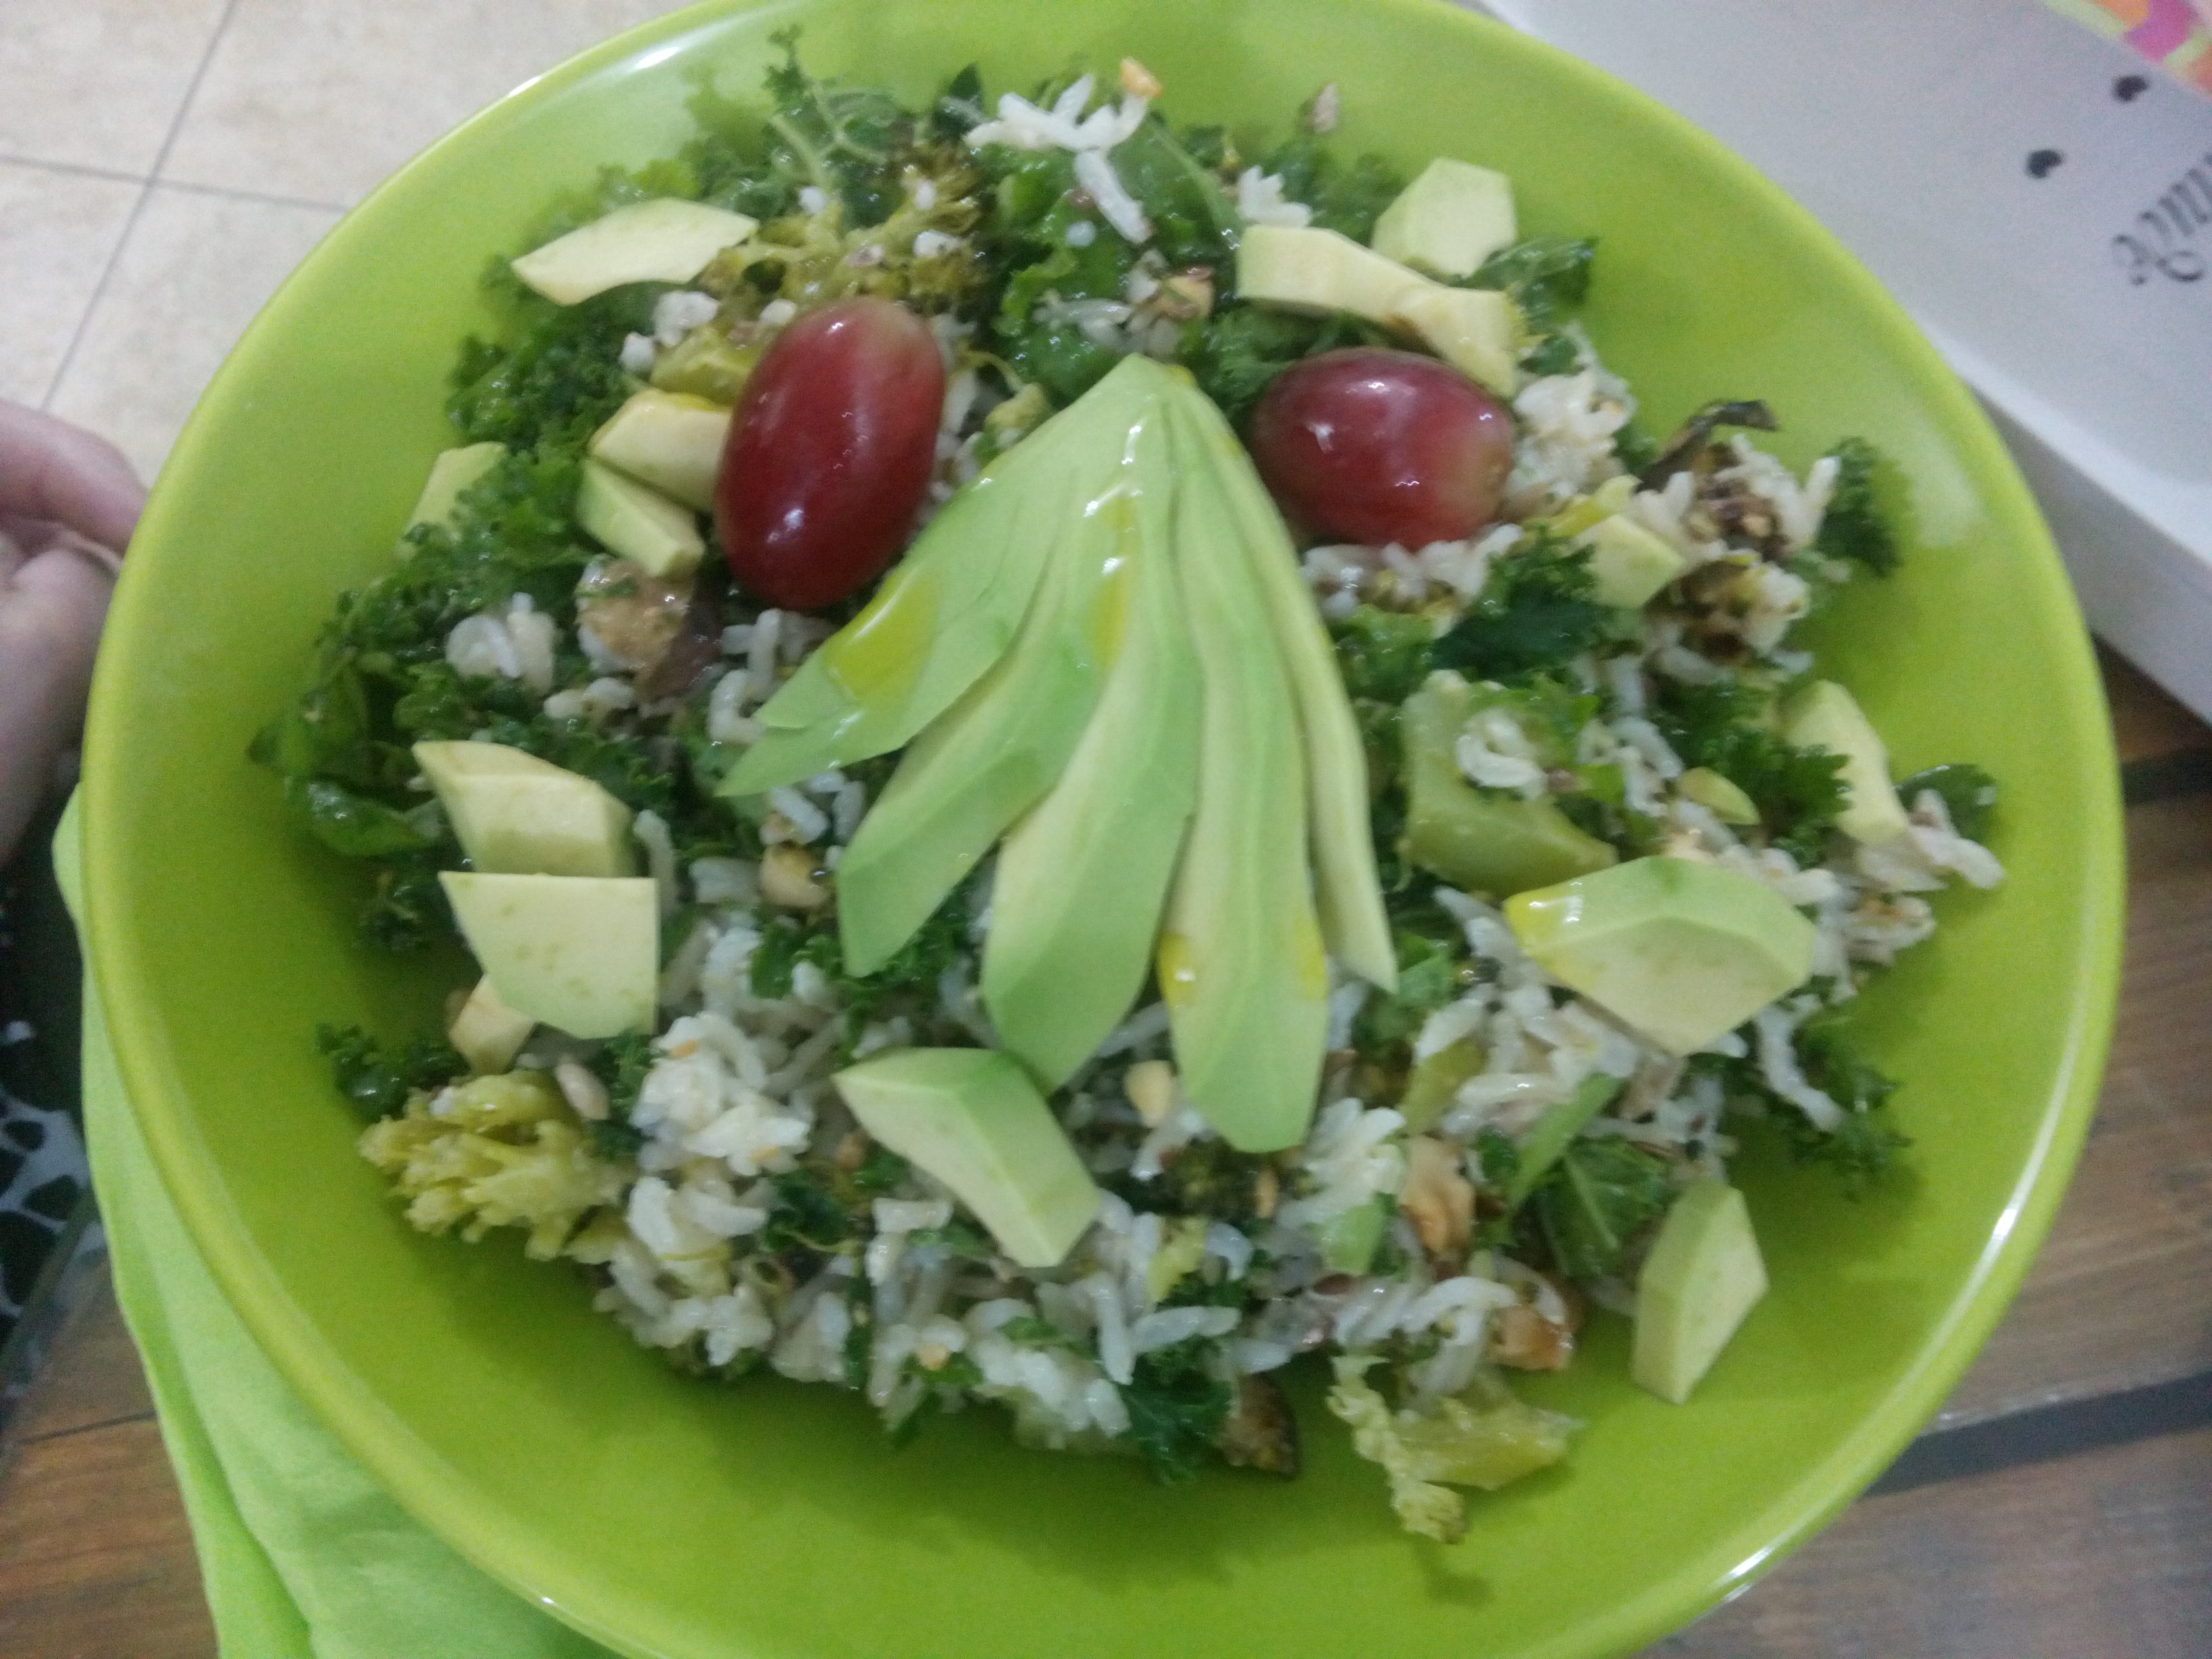 A green dish with brown rice, red grapes and avocado